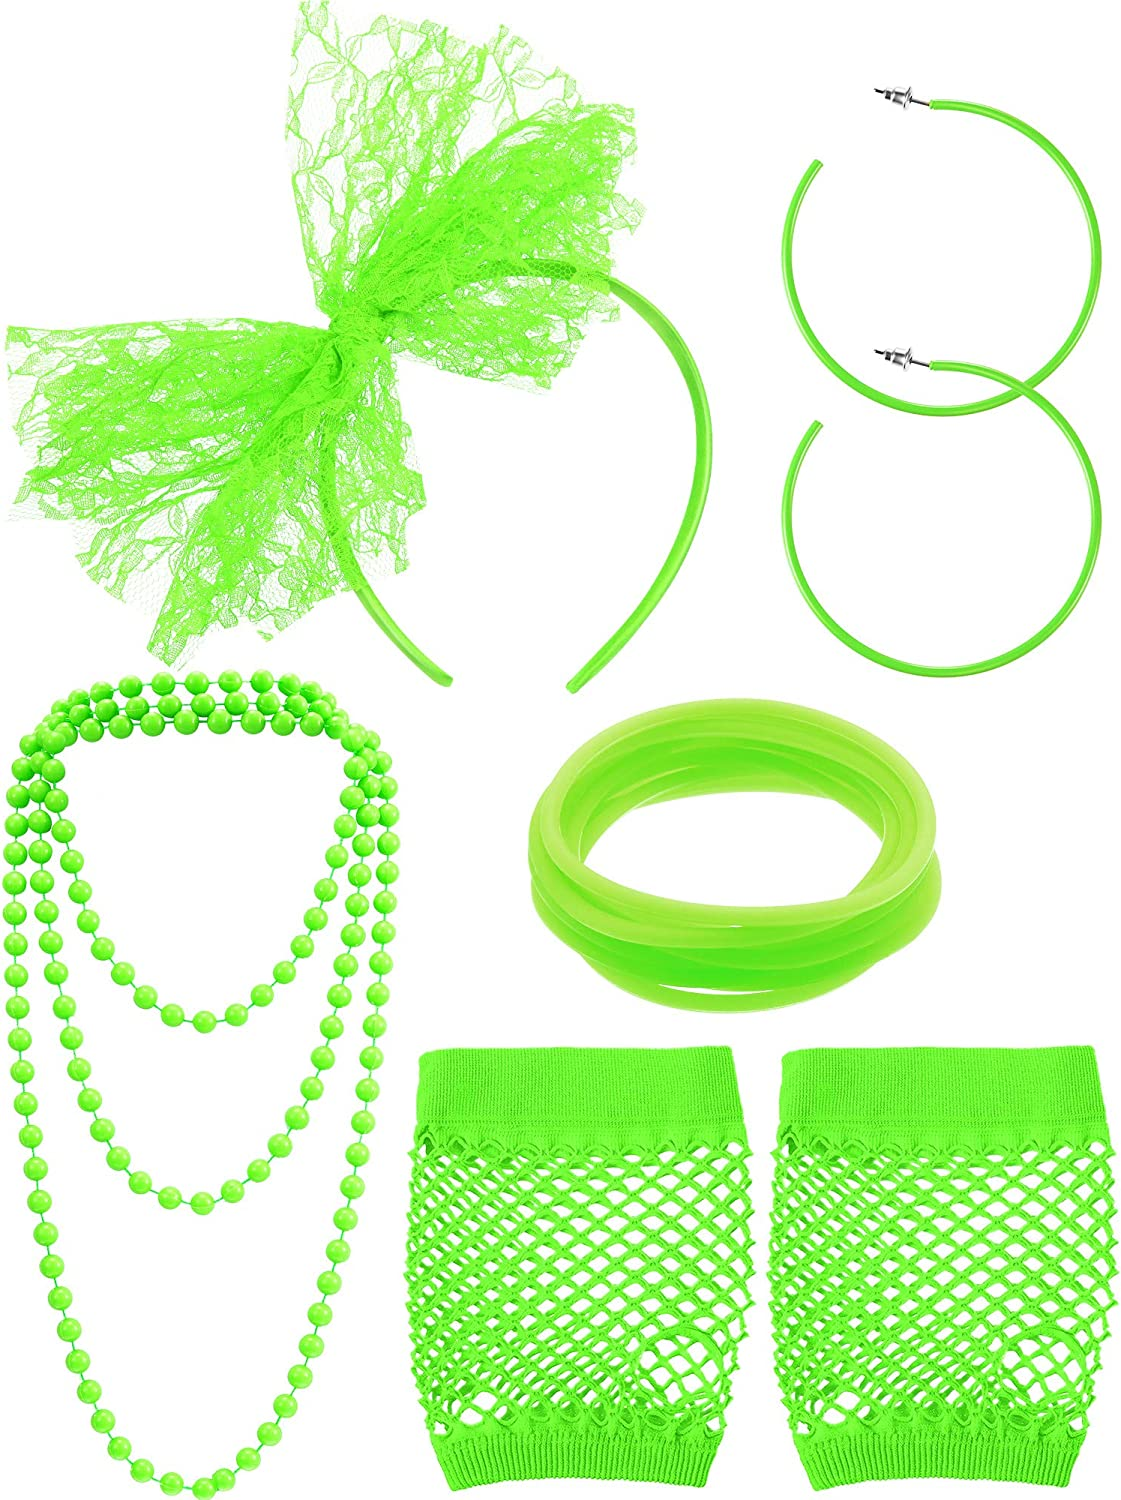 80s Fancy Dress Costume Accessories Lace Headband Earrings Fishnet Gloves Necklace Bracelet for 80s Retro Party (Fluorescent Green)